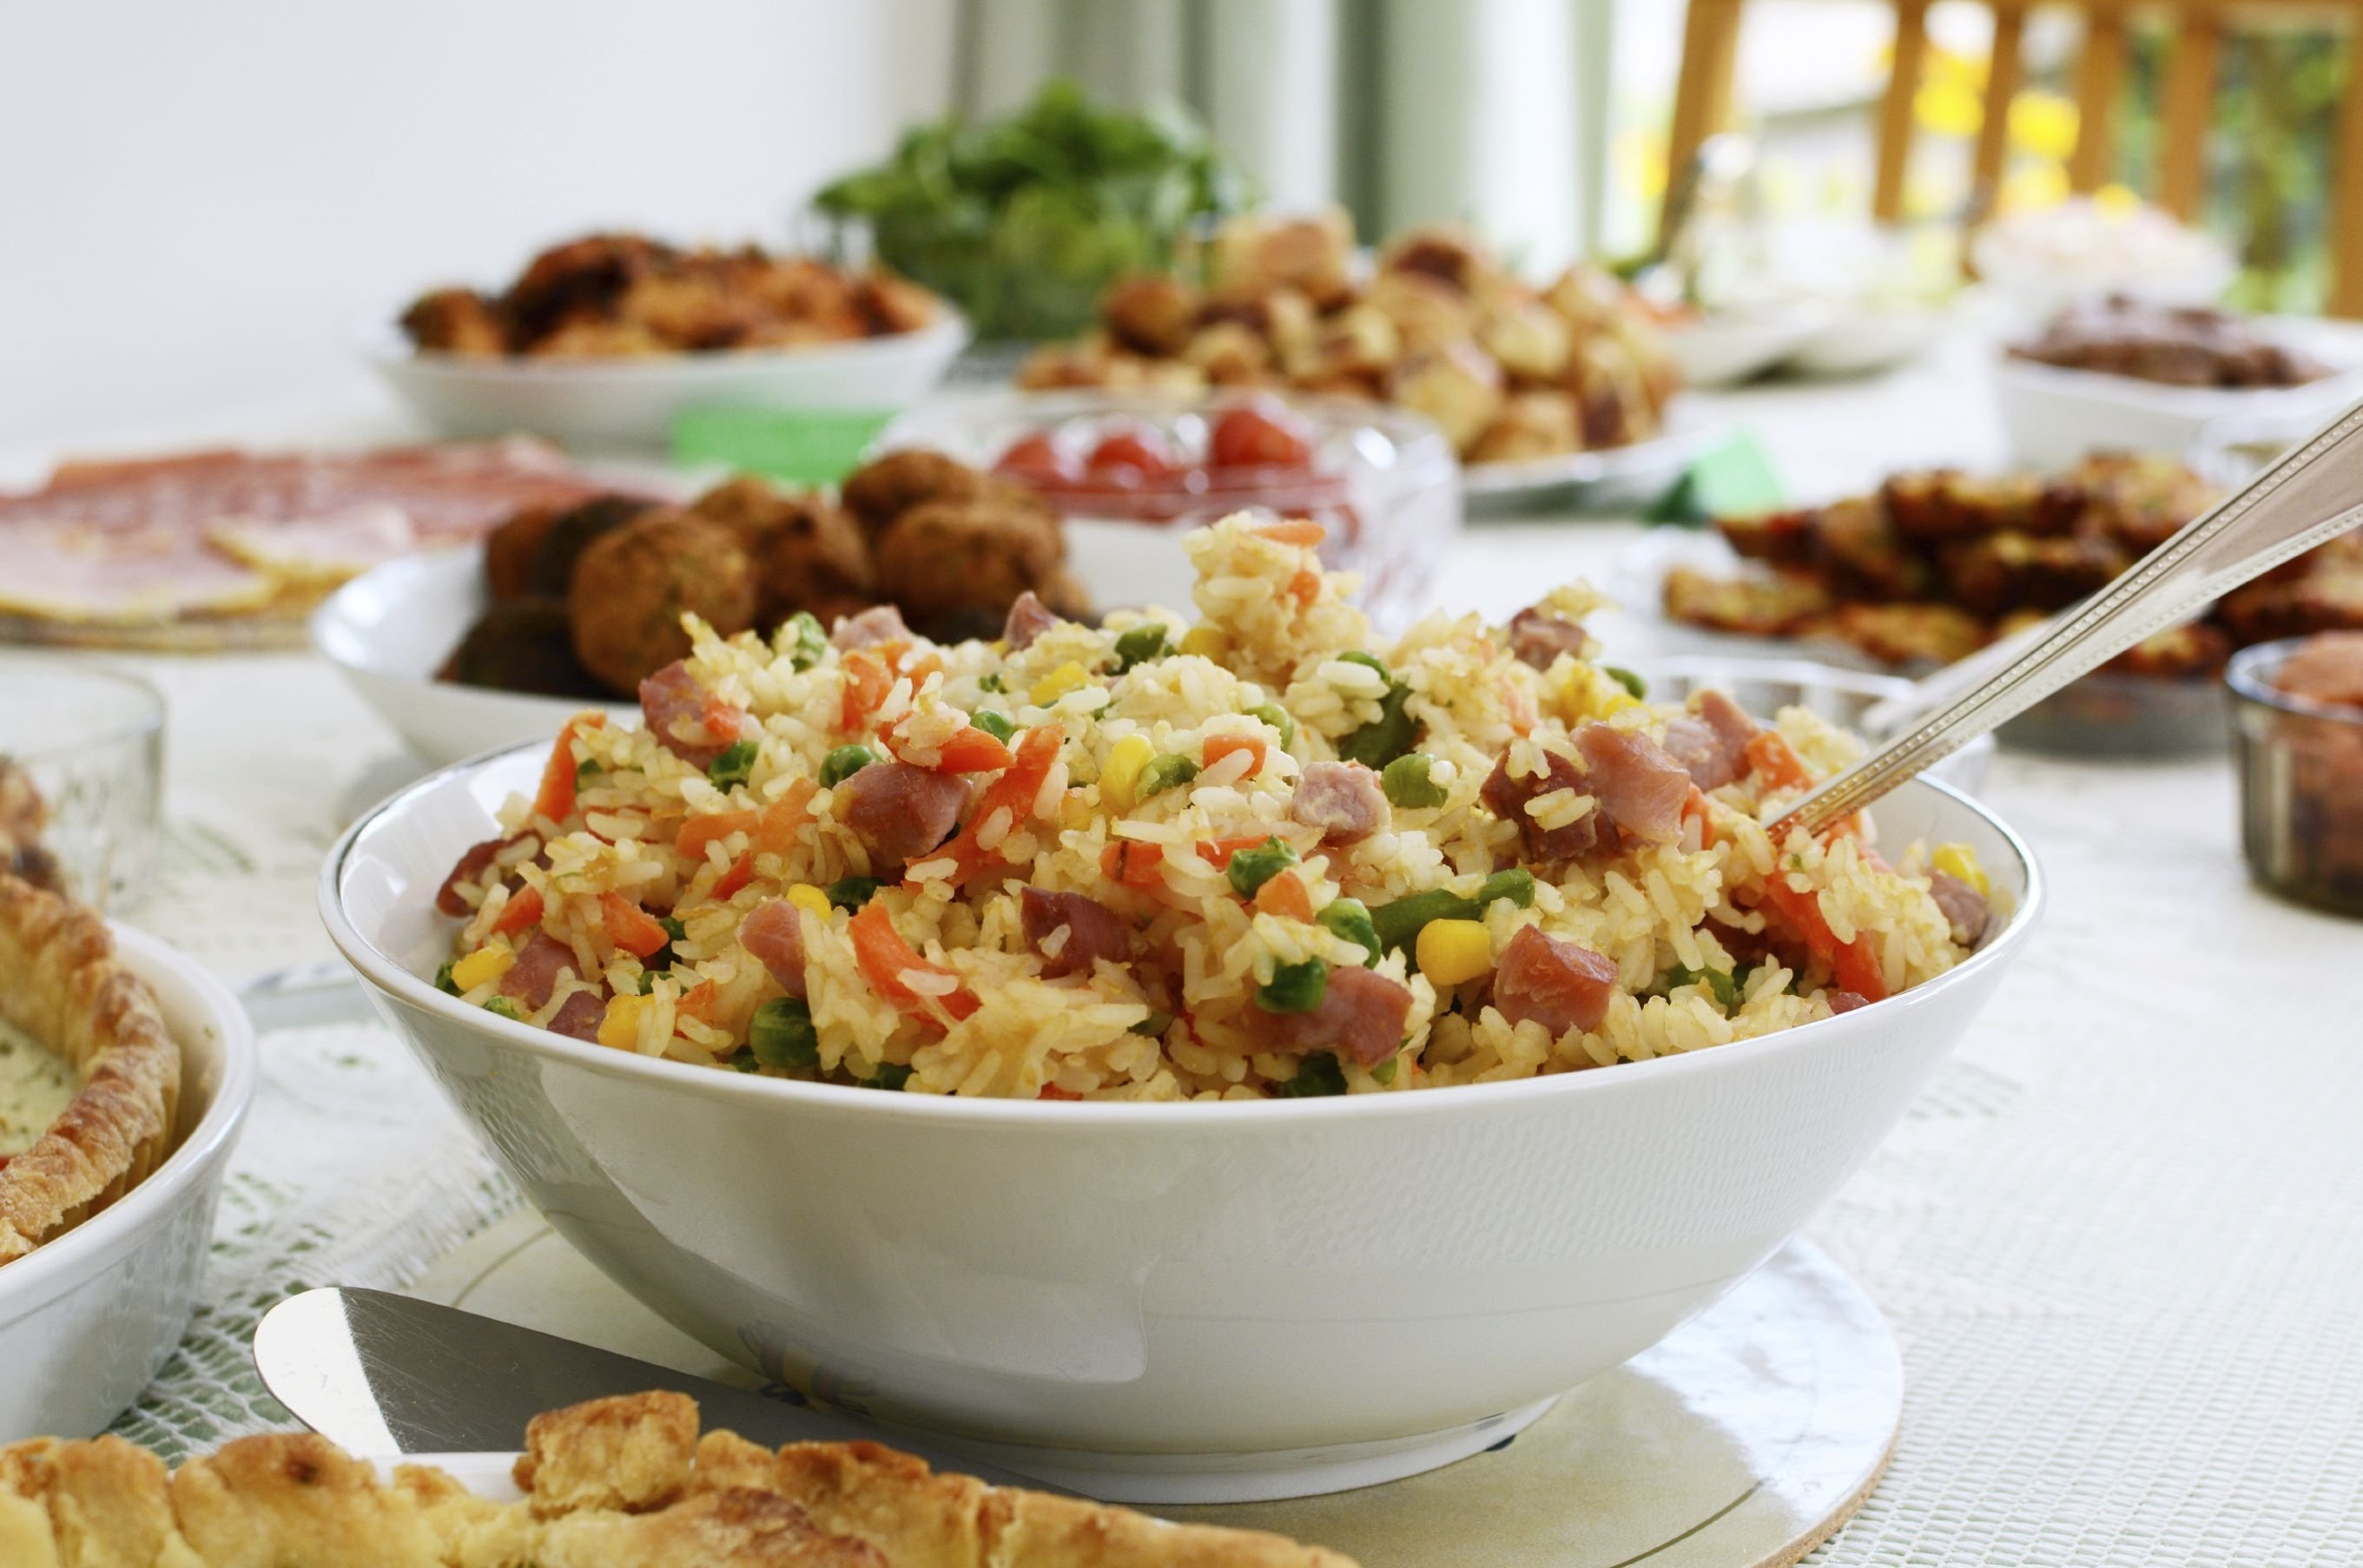 30 potluck themes for work events   potluck themes, potlucks and lunches